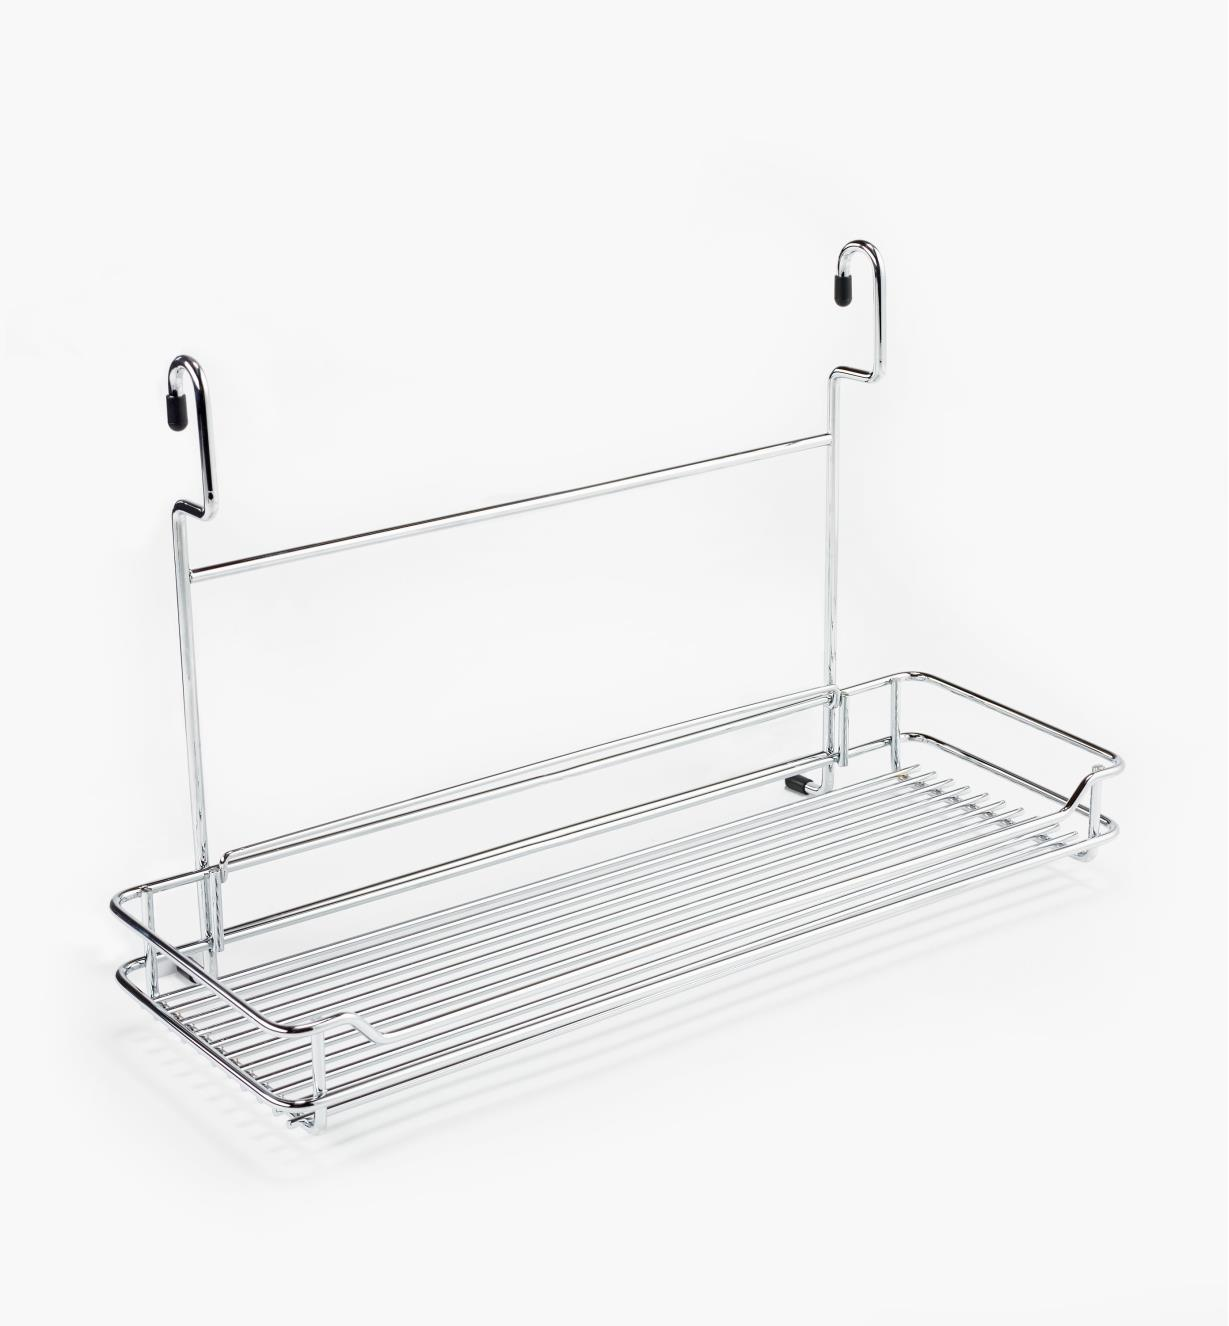 12K3431 - Multi-Purpose Rack, 450mm